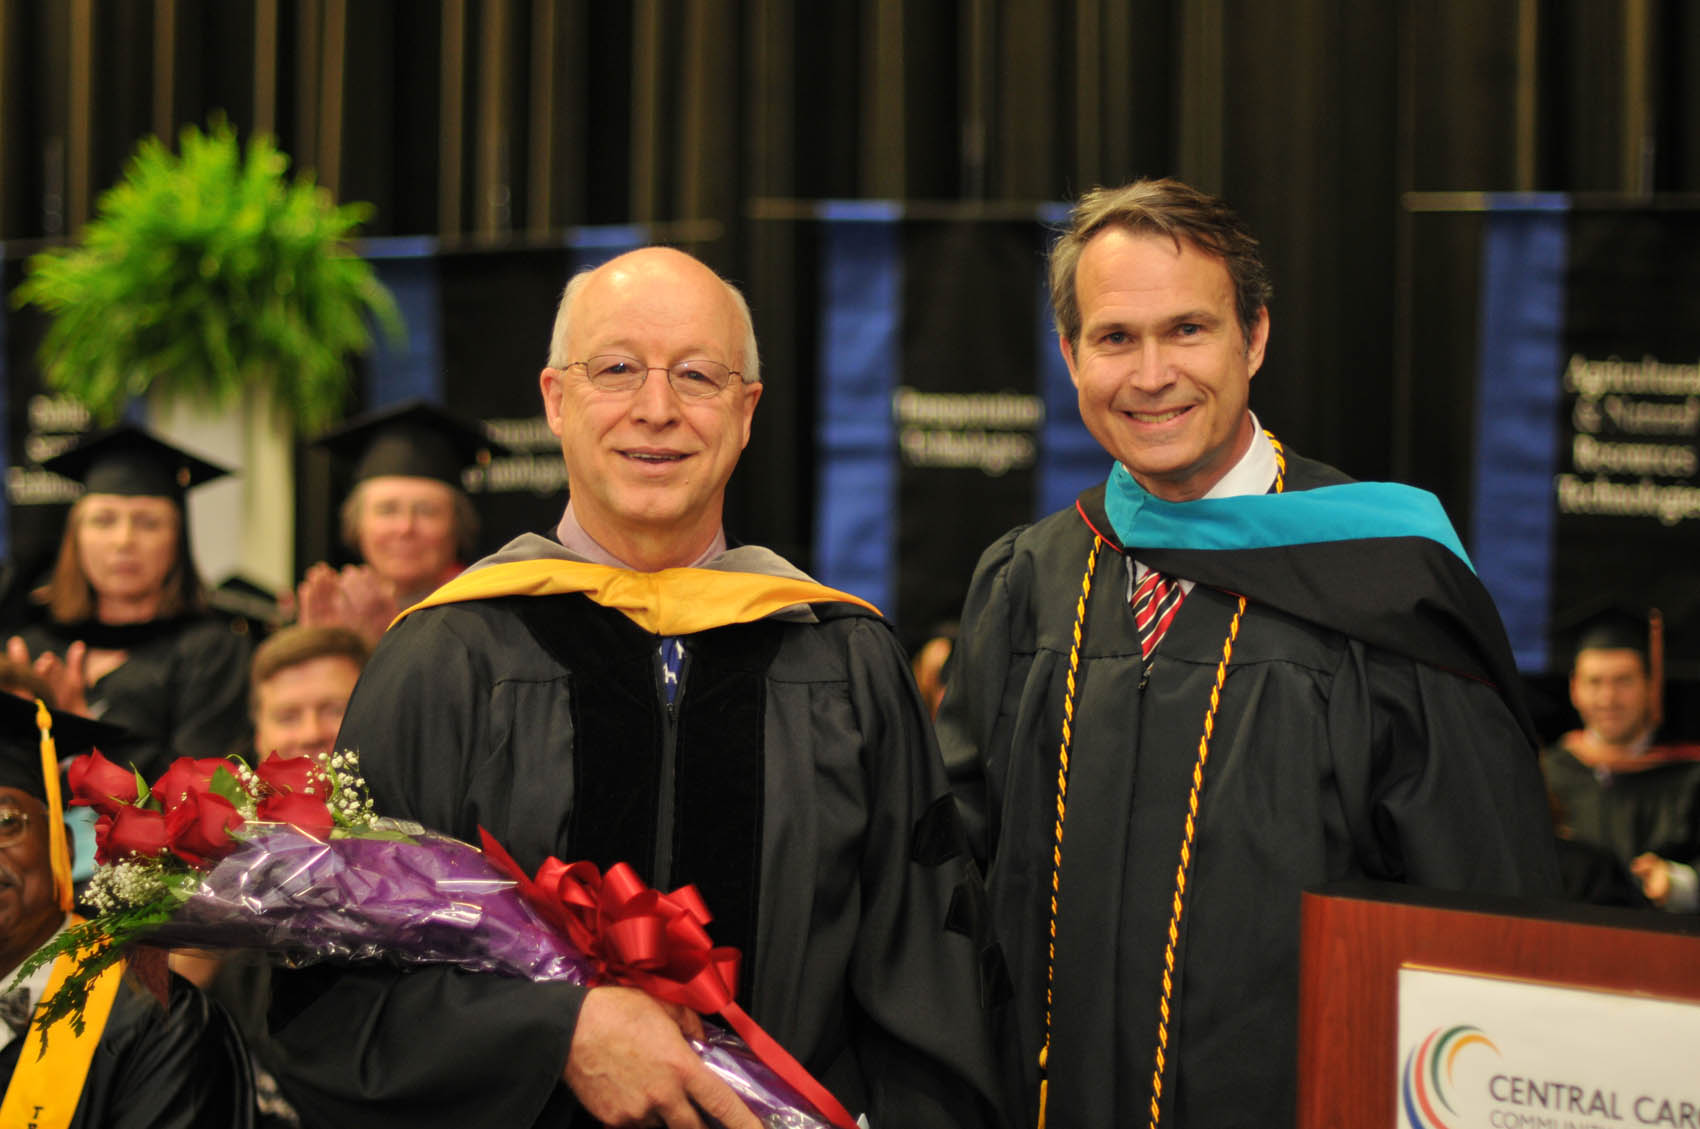 Click to enlarge,  Ken Hoyle Jr. (right), Vice President of Student Services, recognized Dr. Arlen Mills (left) during the 9 a.m. CCCC graduation ceremony on May 12 at the Dennis A. Wicker Civic Center in Sanford. Dr. Mills is retiring from the faculty of the Veterinary Medical Technology program.